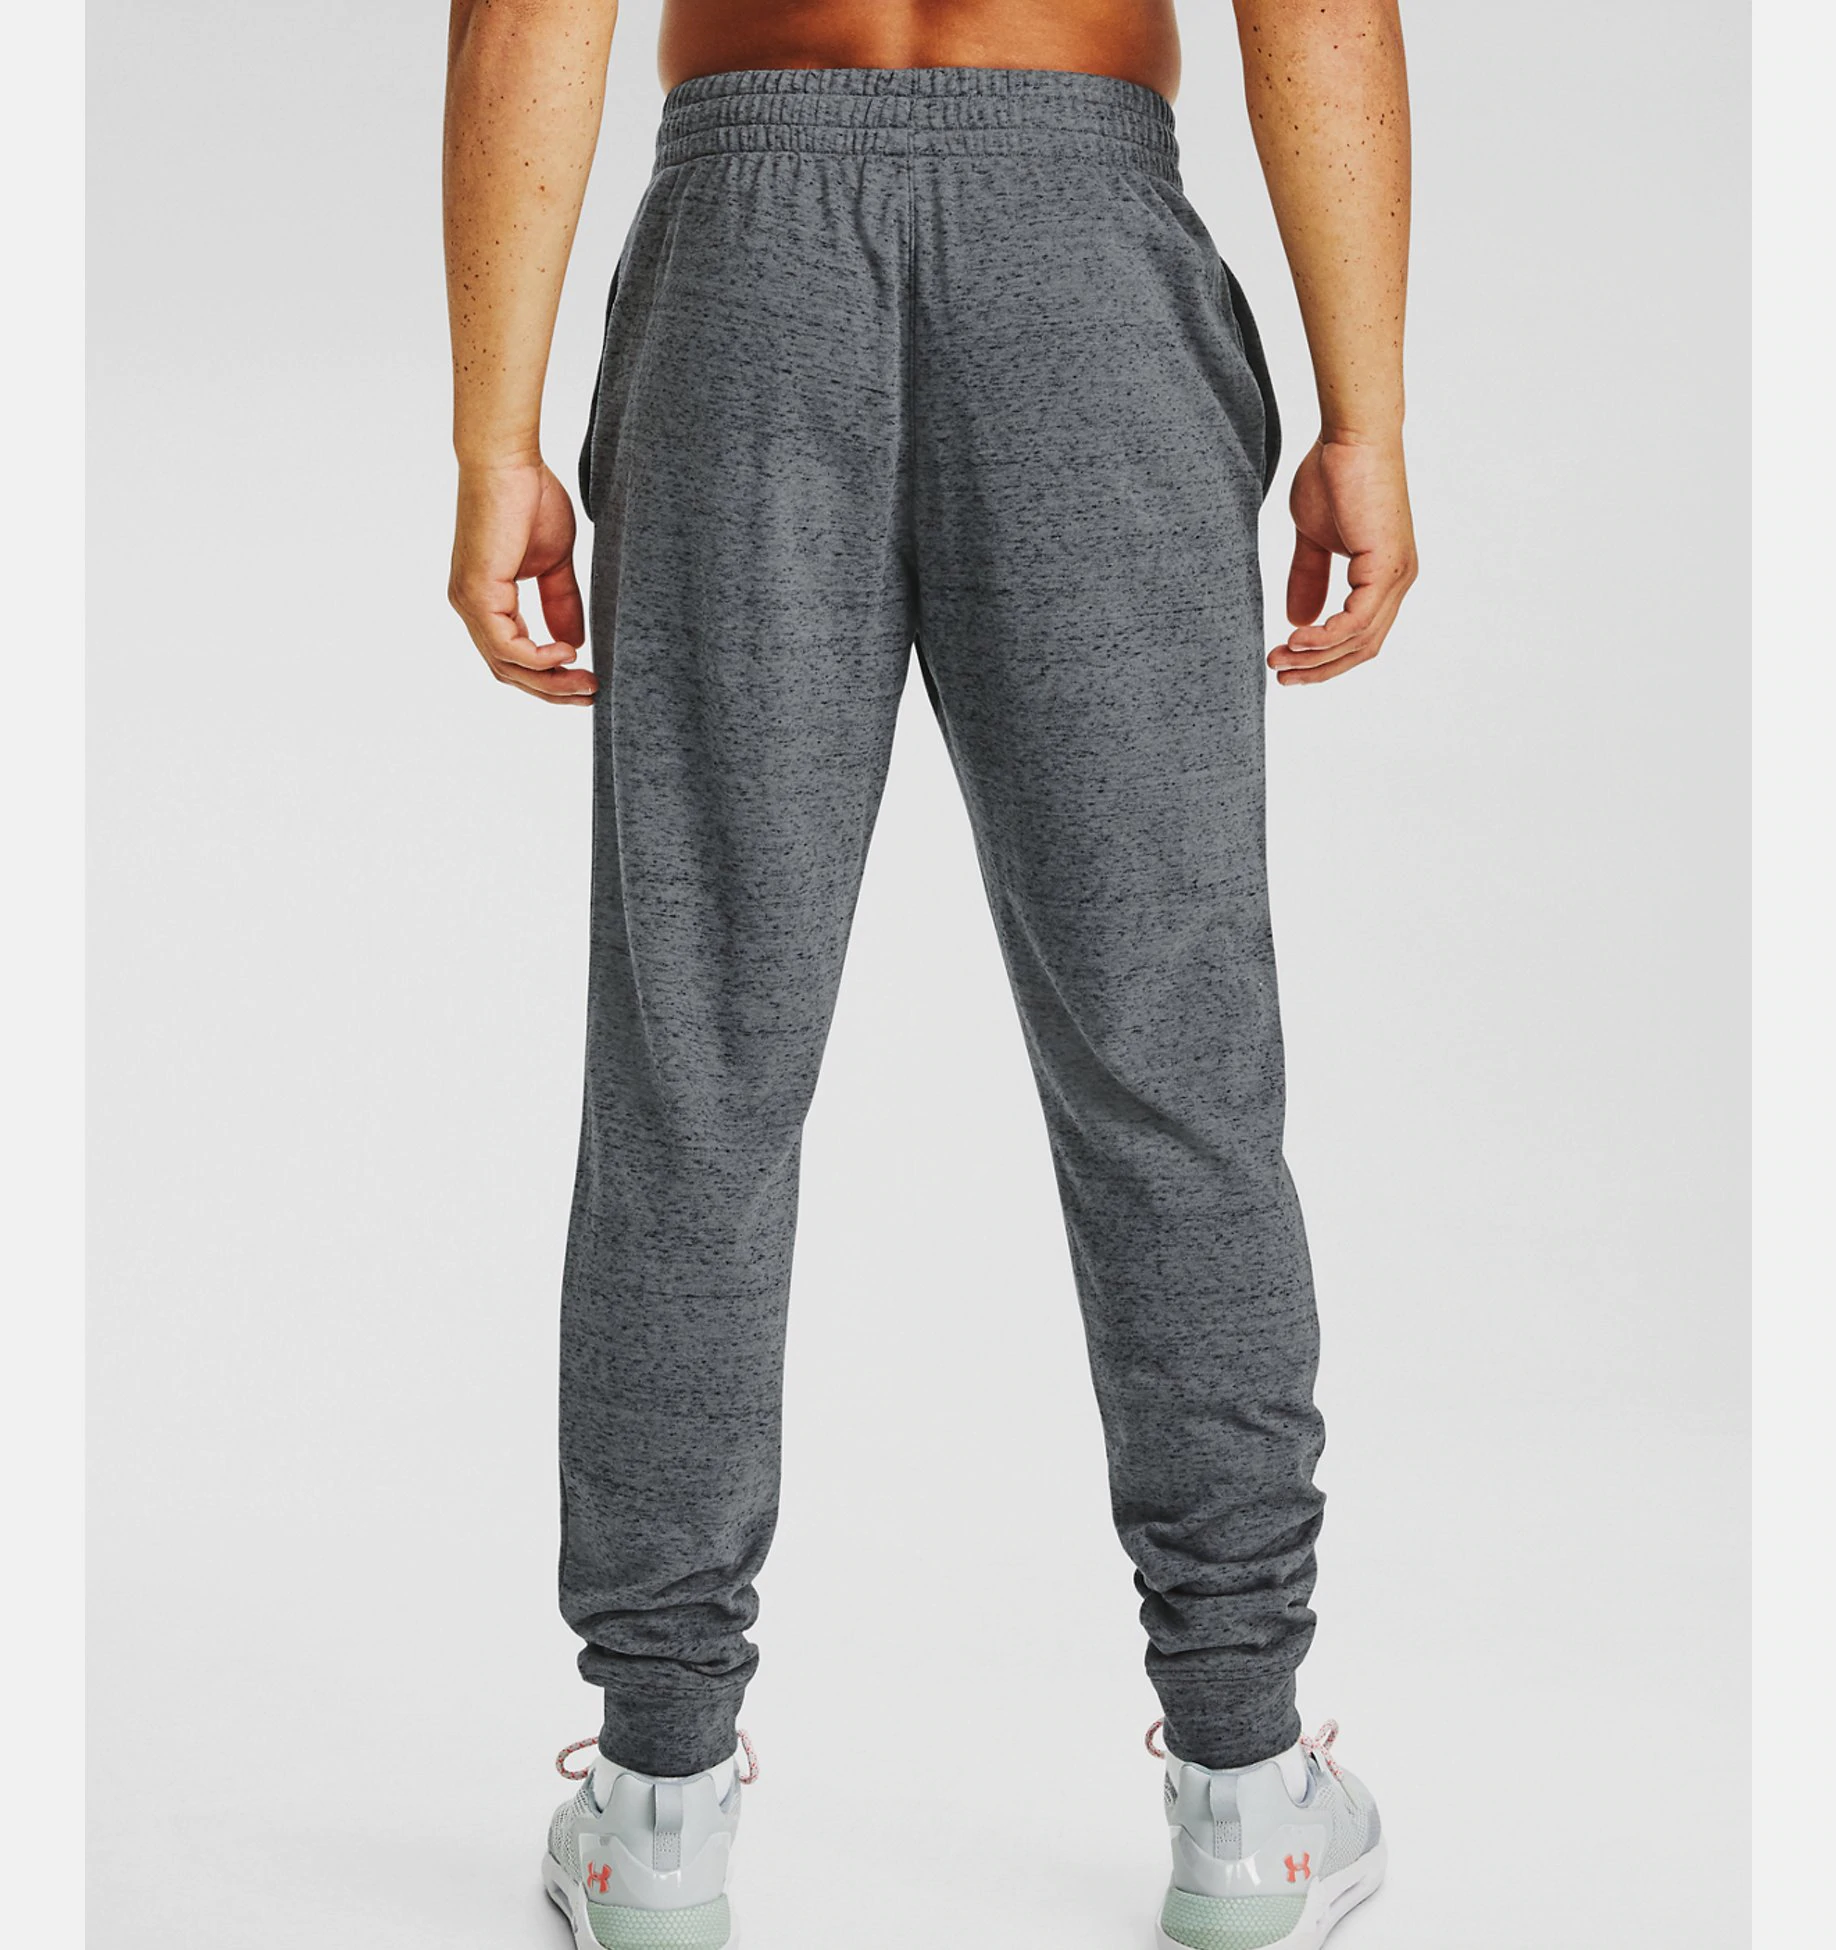 Under Armour Men's Sportstyle Joggers